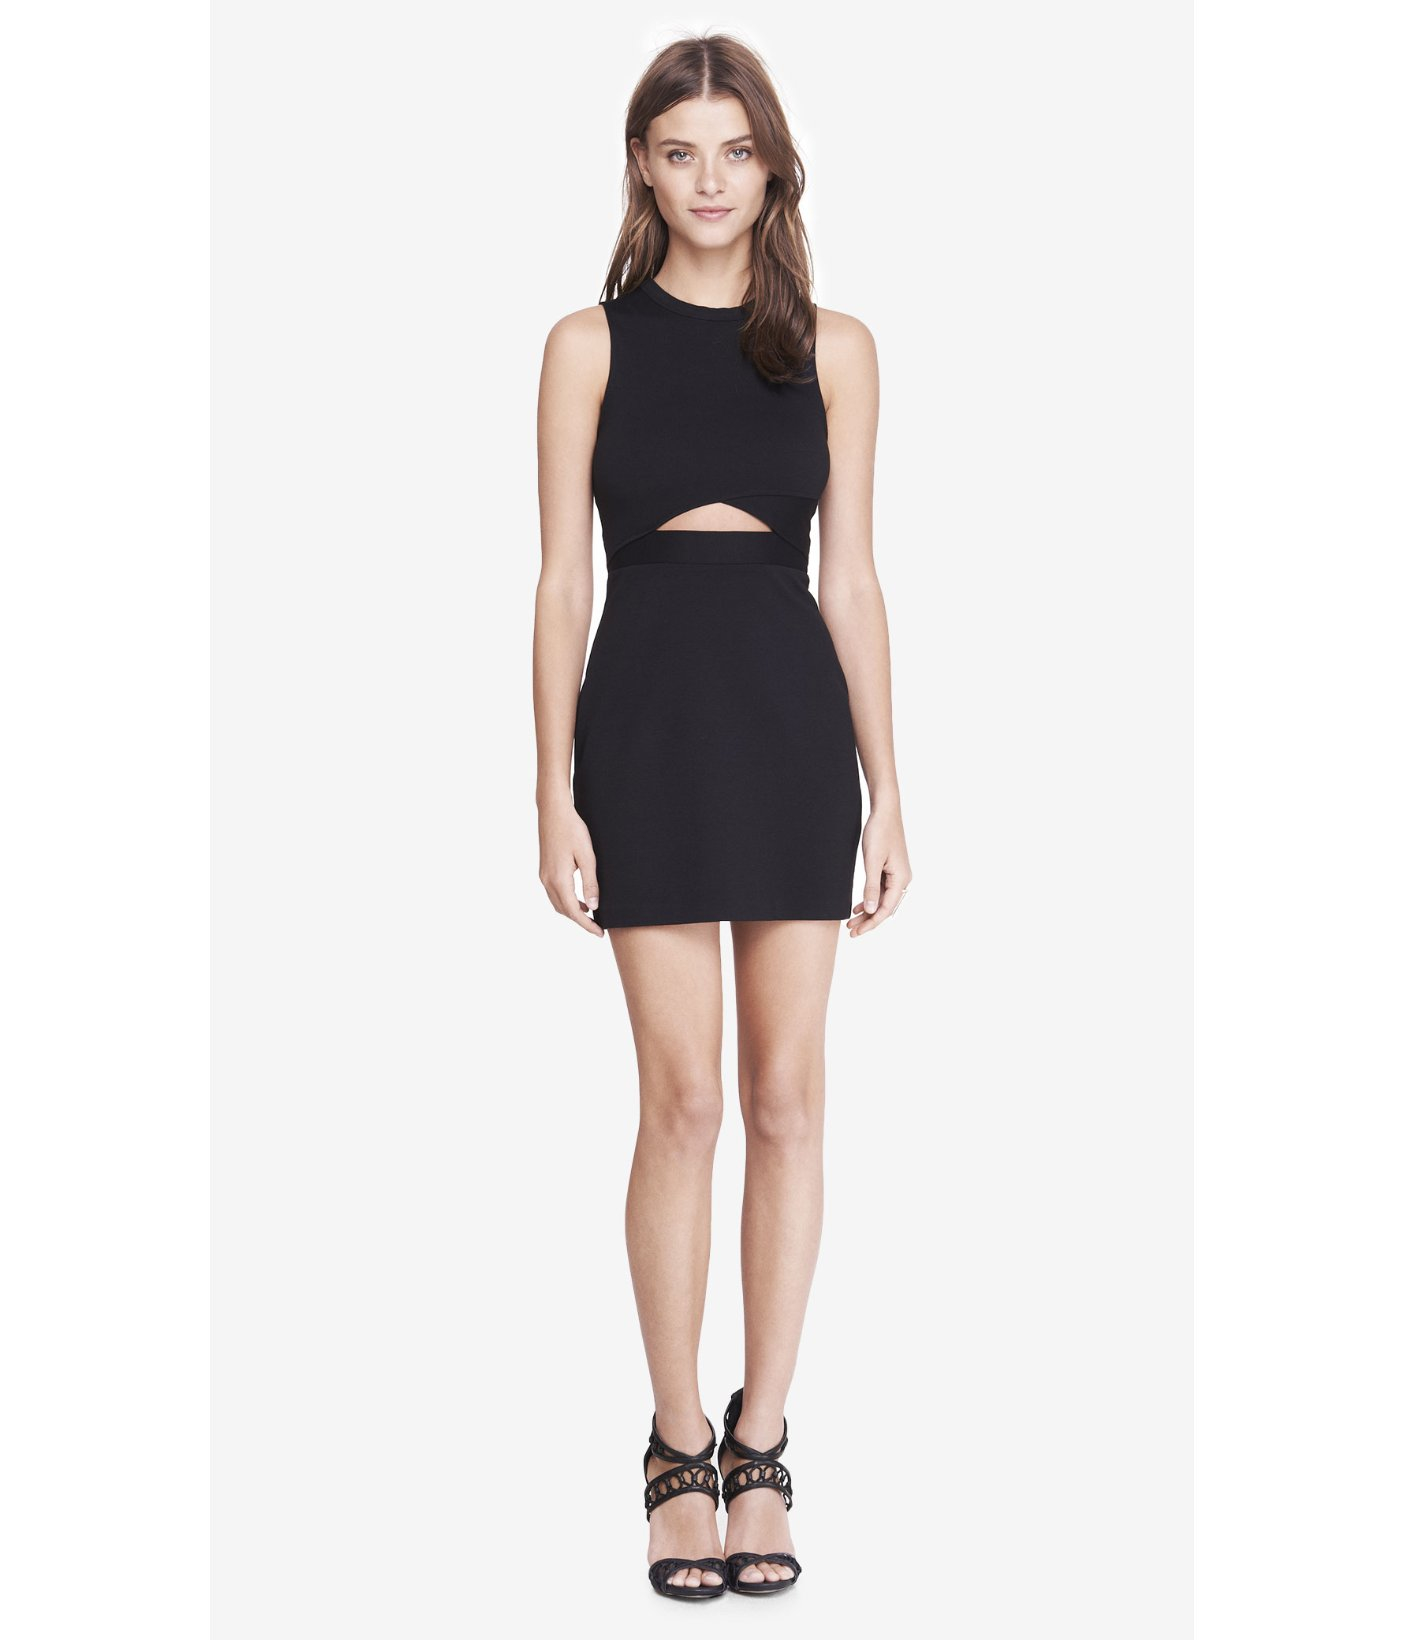 Check our latest styles of Dresses such as Cut-Out at REVOLVE with free day shipping and returns, 30 day price match guarantee.